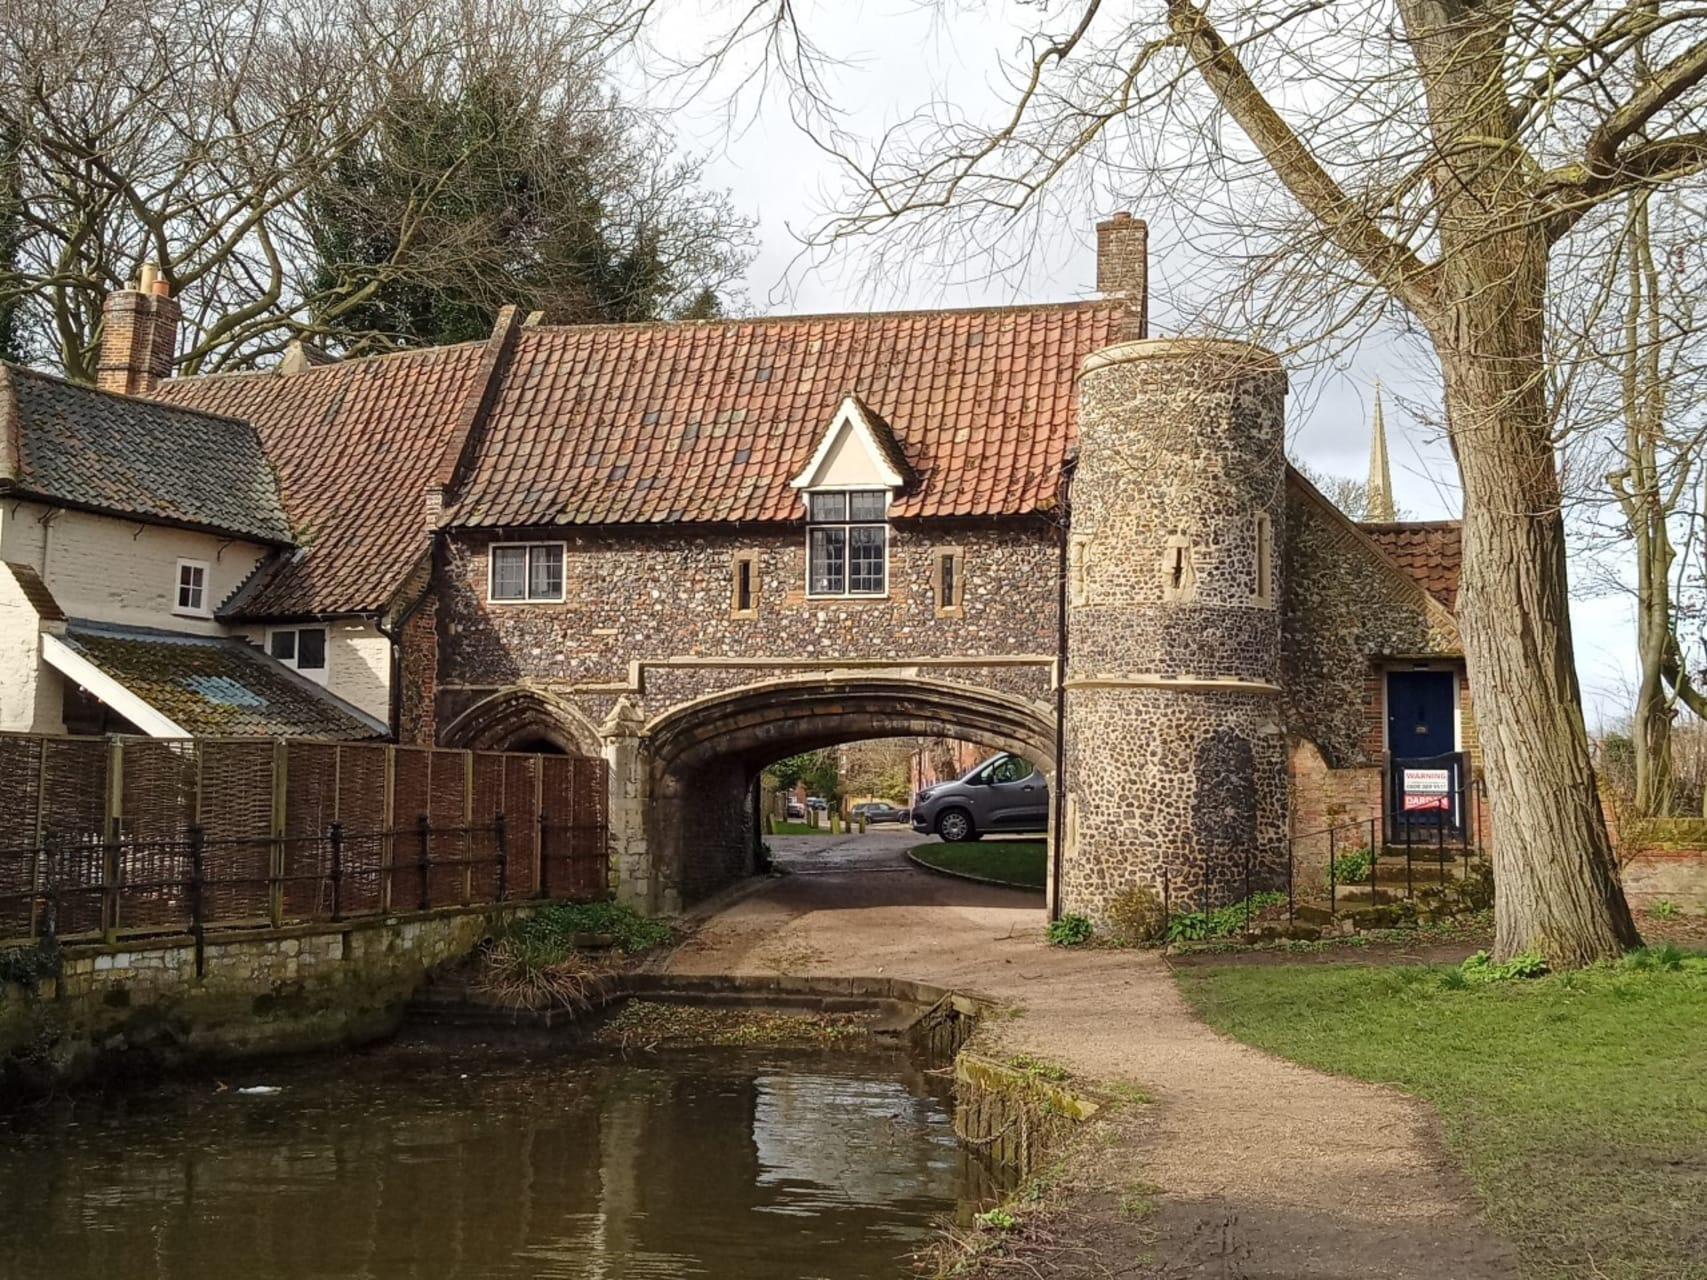 Norwich - Norwich Riverside Walk – Pull's Ferry to the Adam and Eve